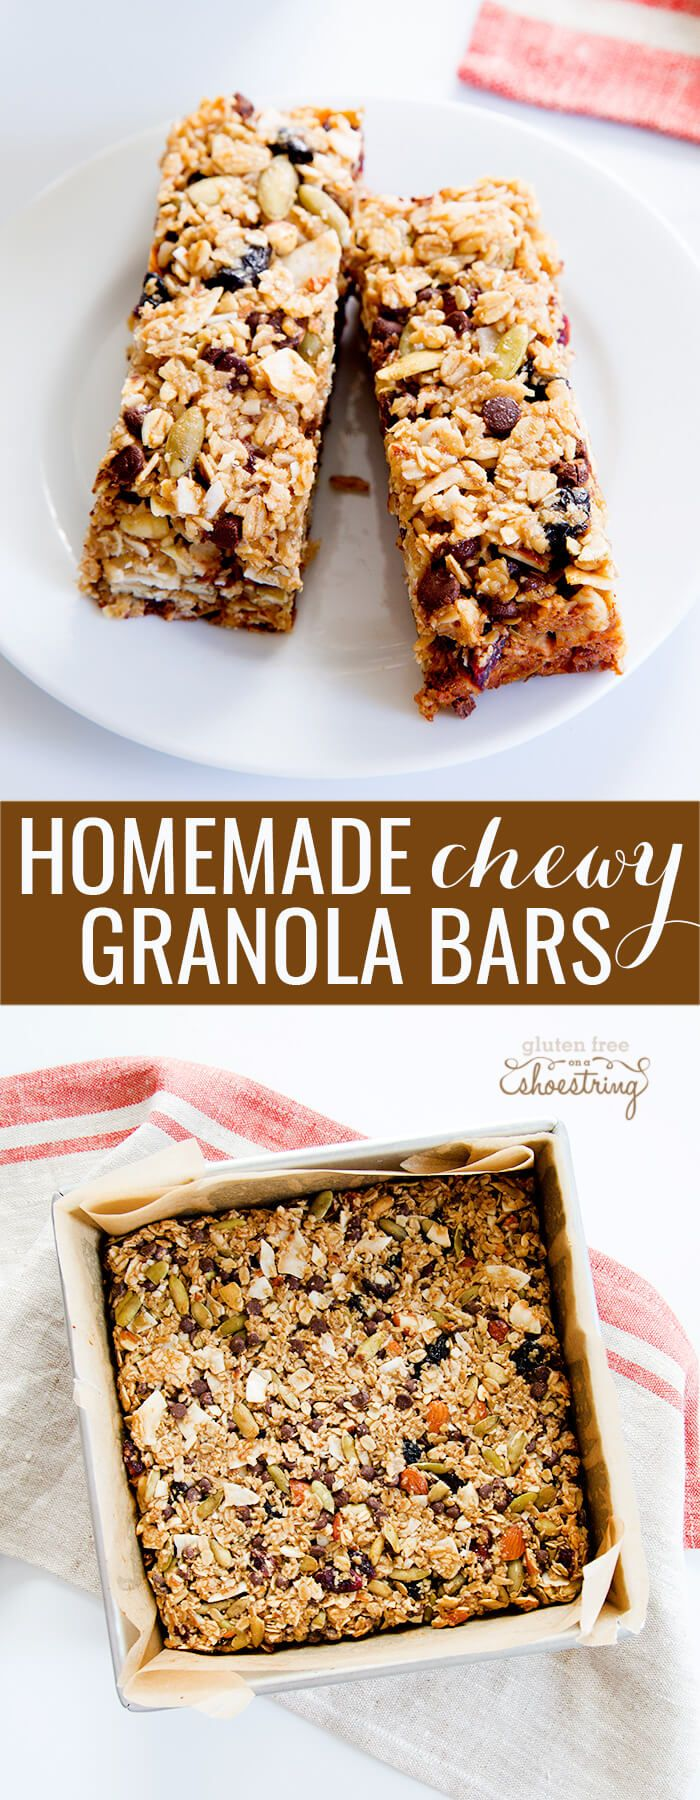 This chewy homemade granola bar recipe is endlessly customizable with ...